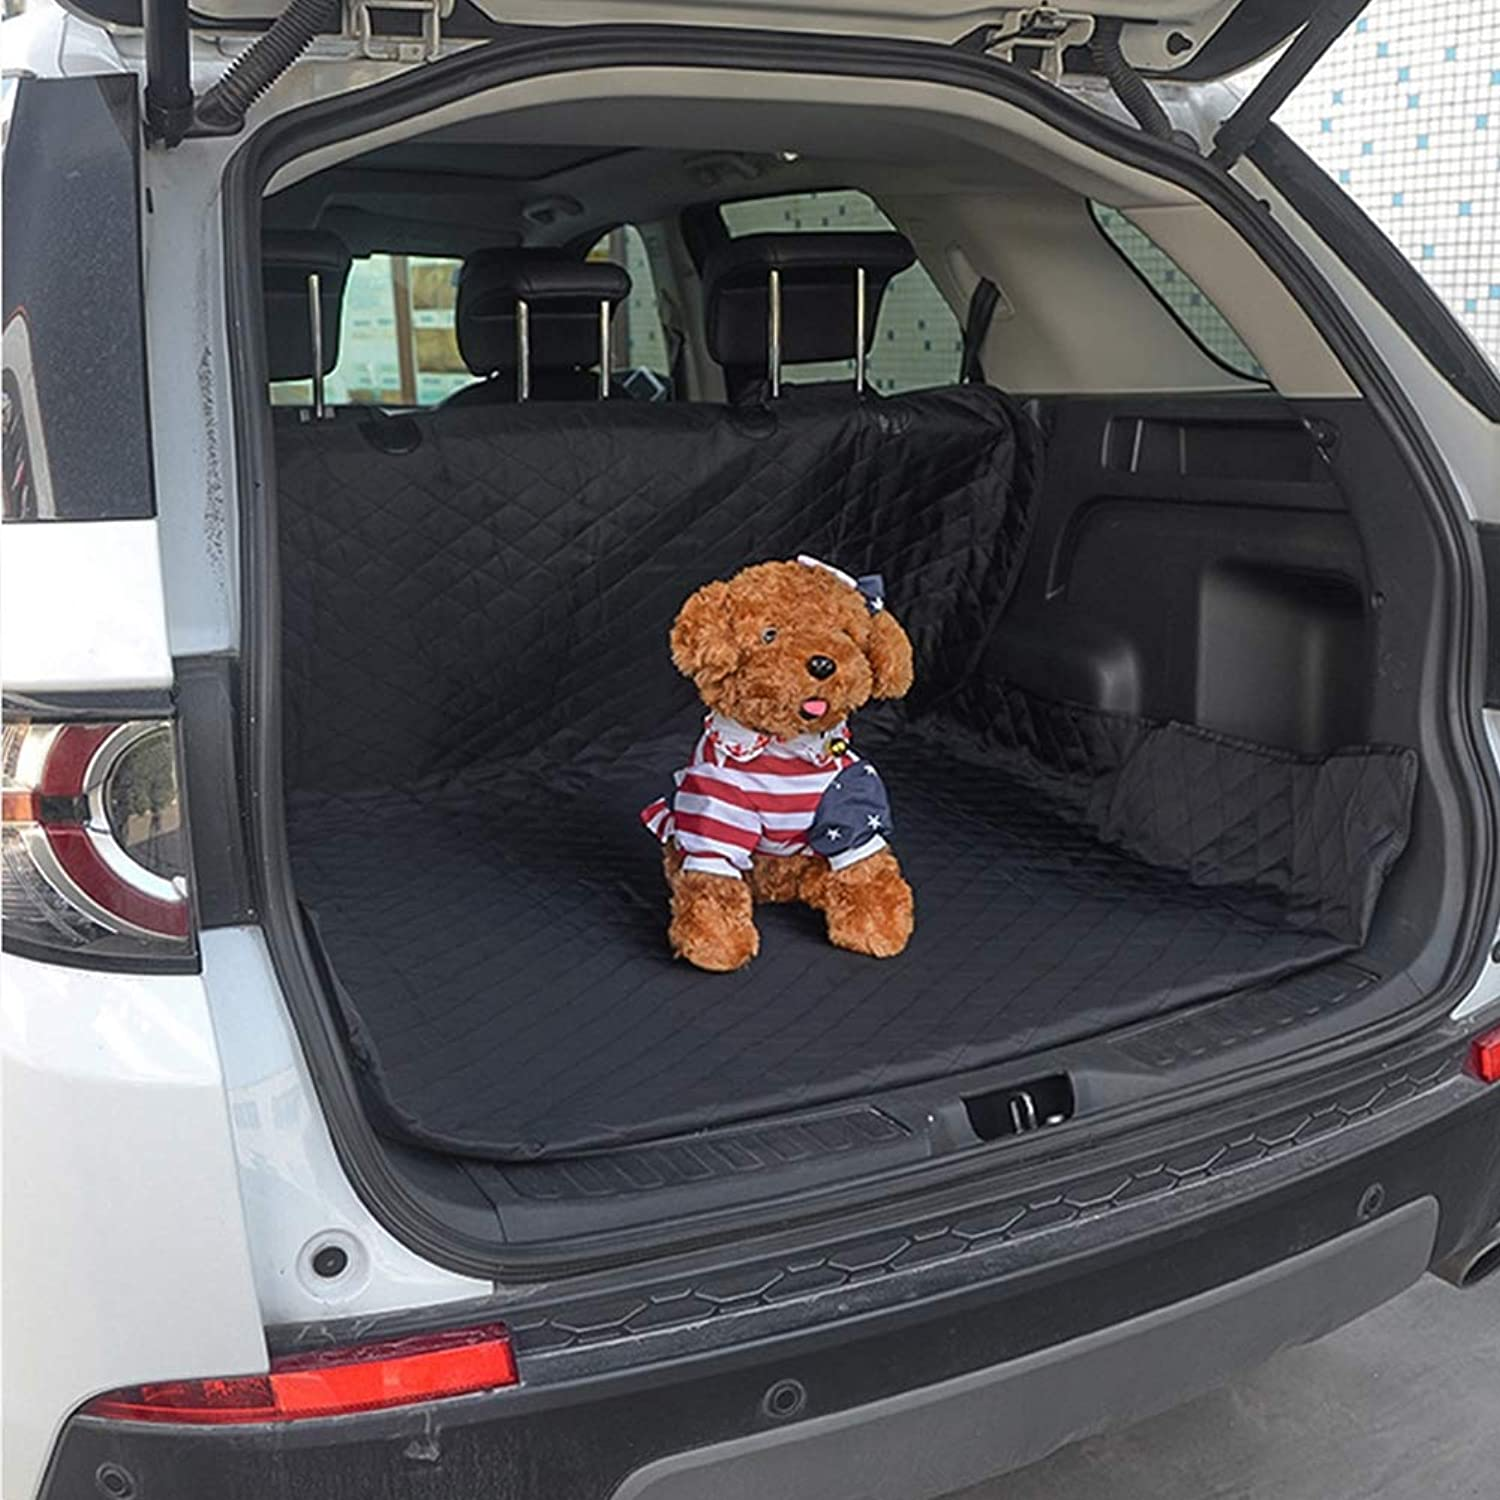 After The Medium SUV car Trunk Mat Waterproof Quilted Cotton Car truCnk Mat Dog Pad 208  132 cm600D Oxford Loth + PP Cotton + 210D Oxford Cloth + Slip Net